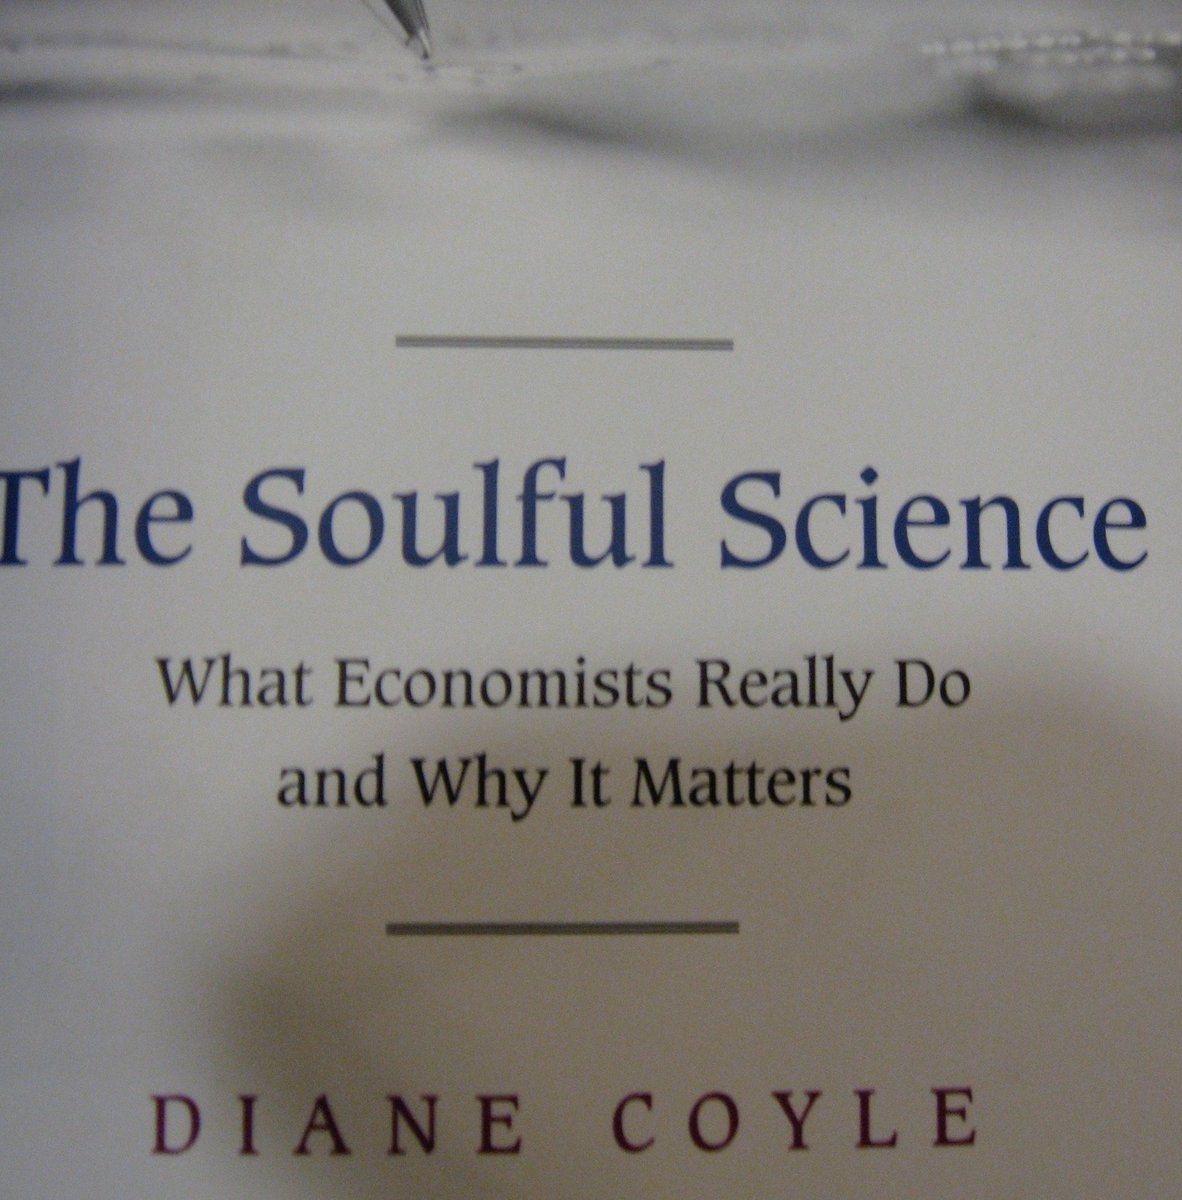 the soulful science coyle diane